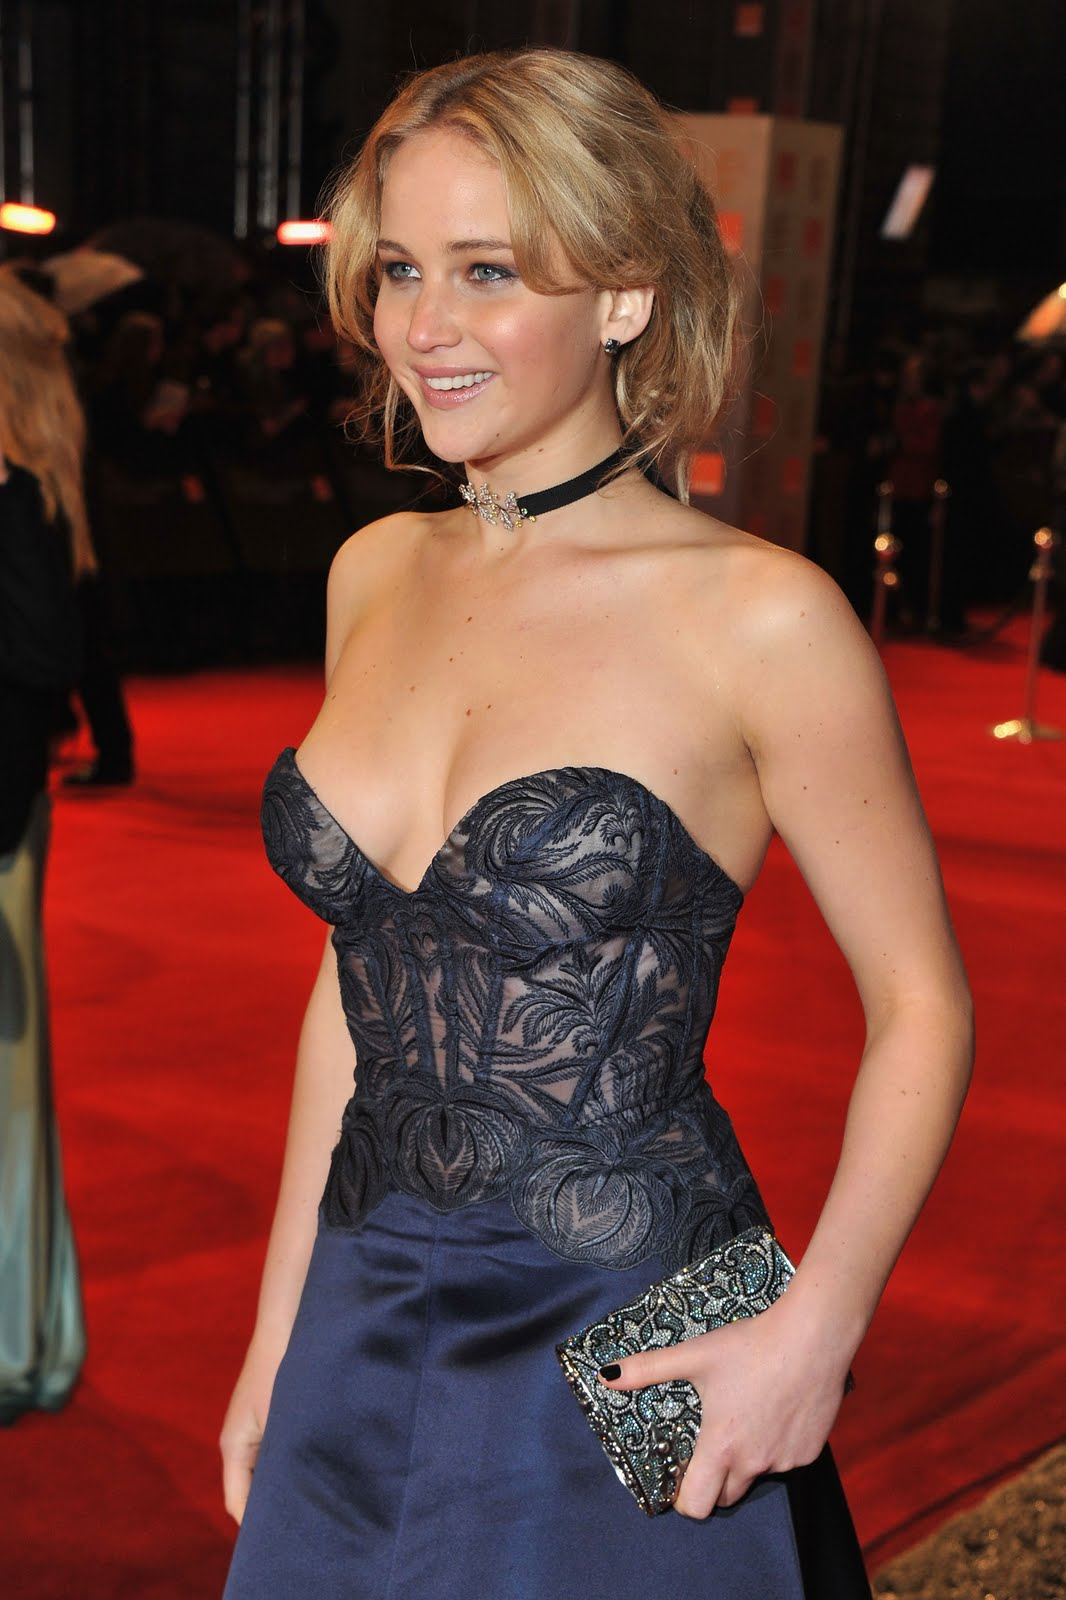 World's Most Beautiful Women: Jennifer Lawrence